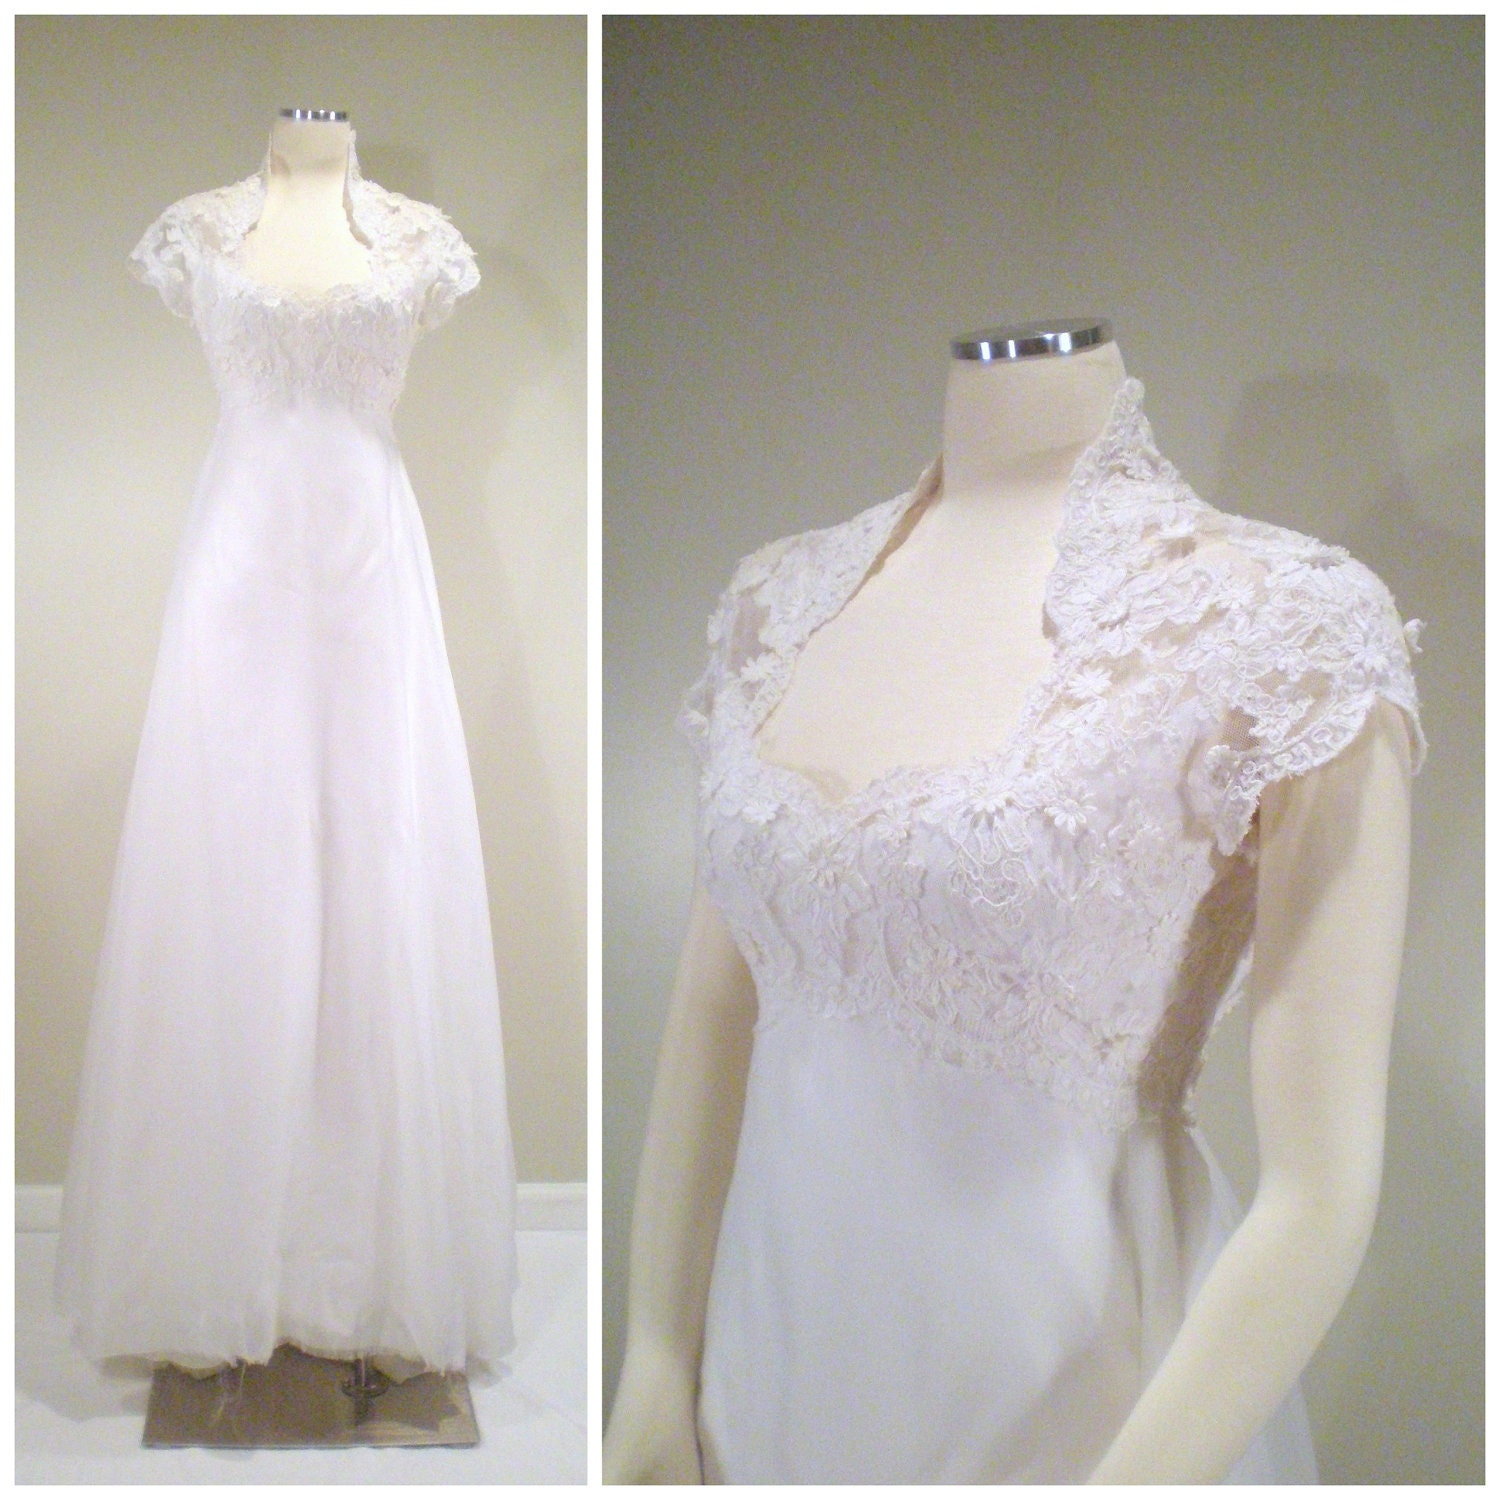 Wedding Dresses Boston: 1960s Priscilla Of Boston Wedding Dress Gown Kate Middleton